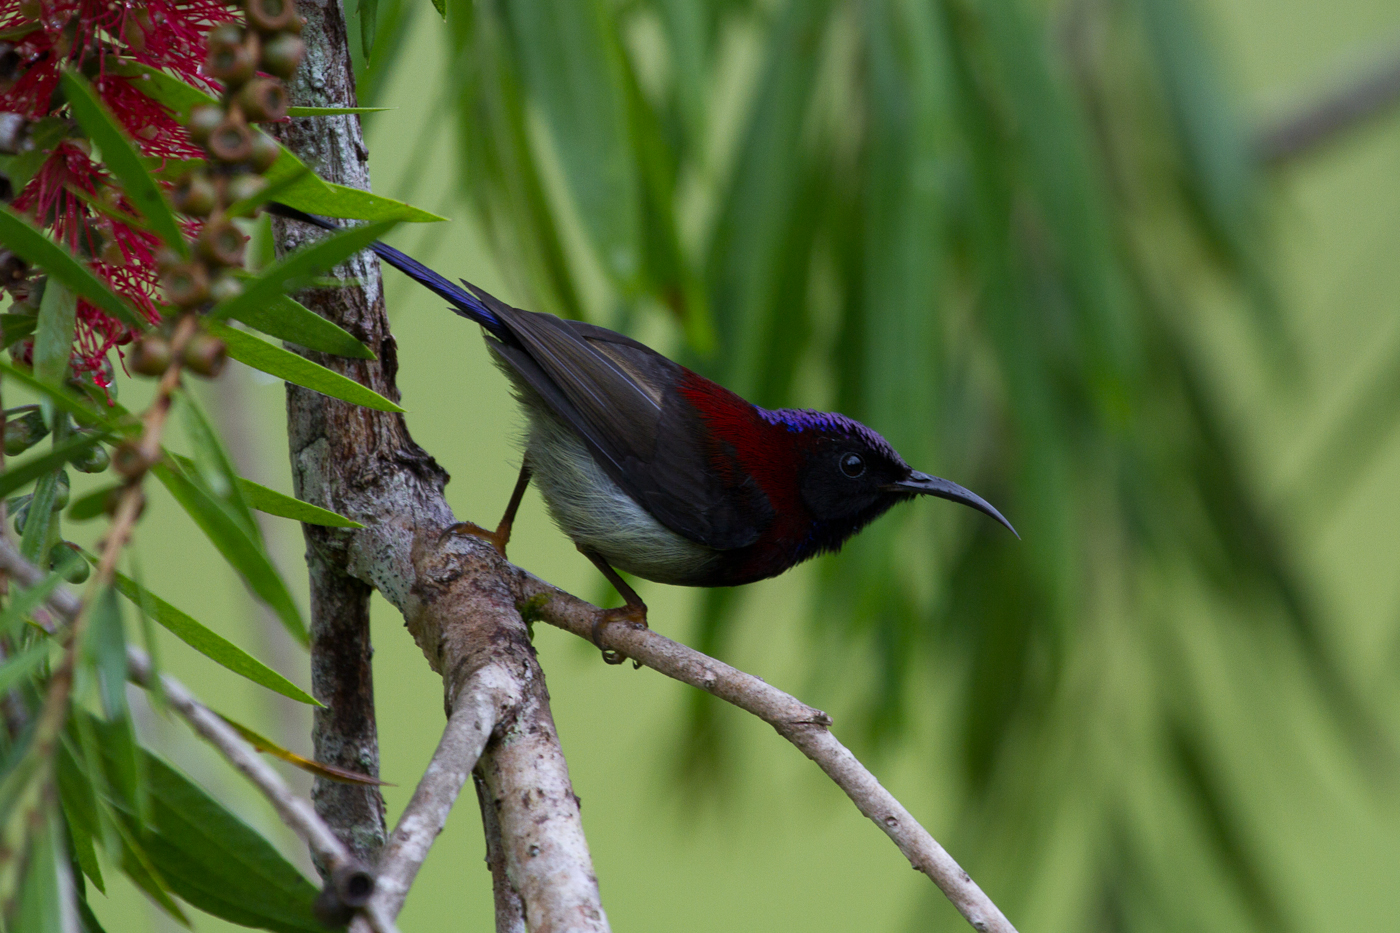 Black-Throated Sunbird (Subspecies: Wrayi), Fraser's Hill, Malaysia